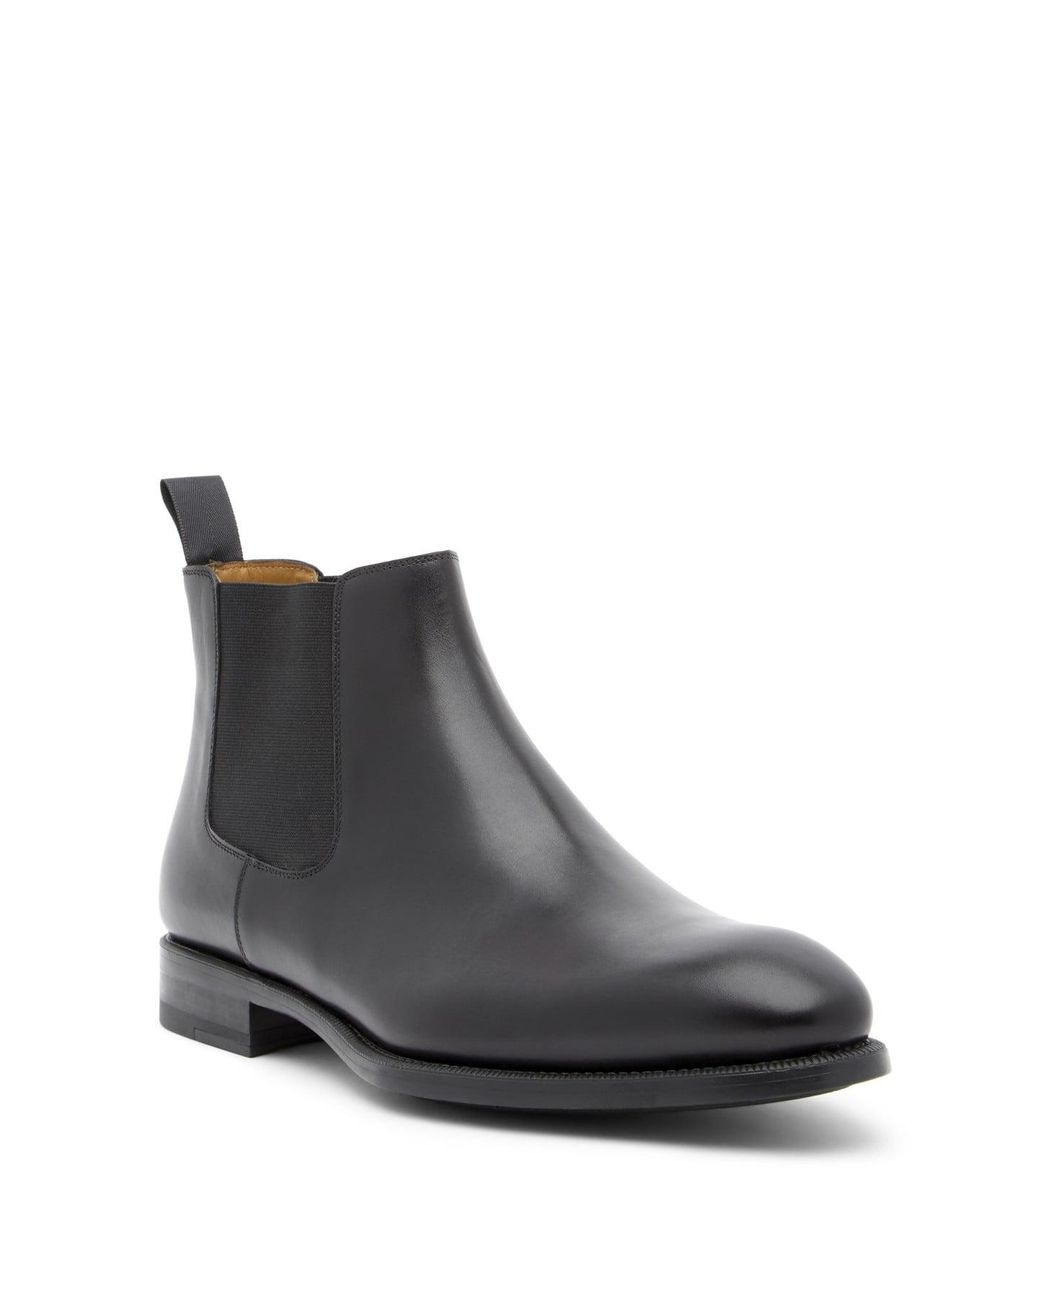 Magnanni Leather Foster Chelsea Boot in